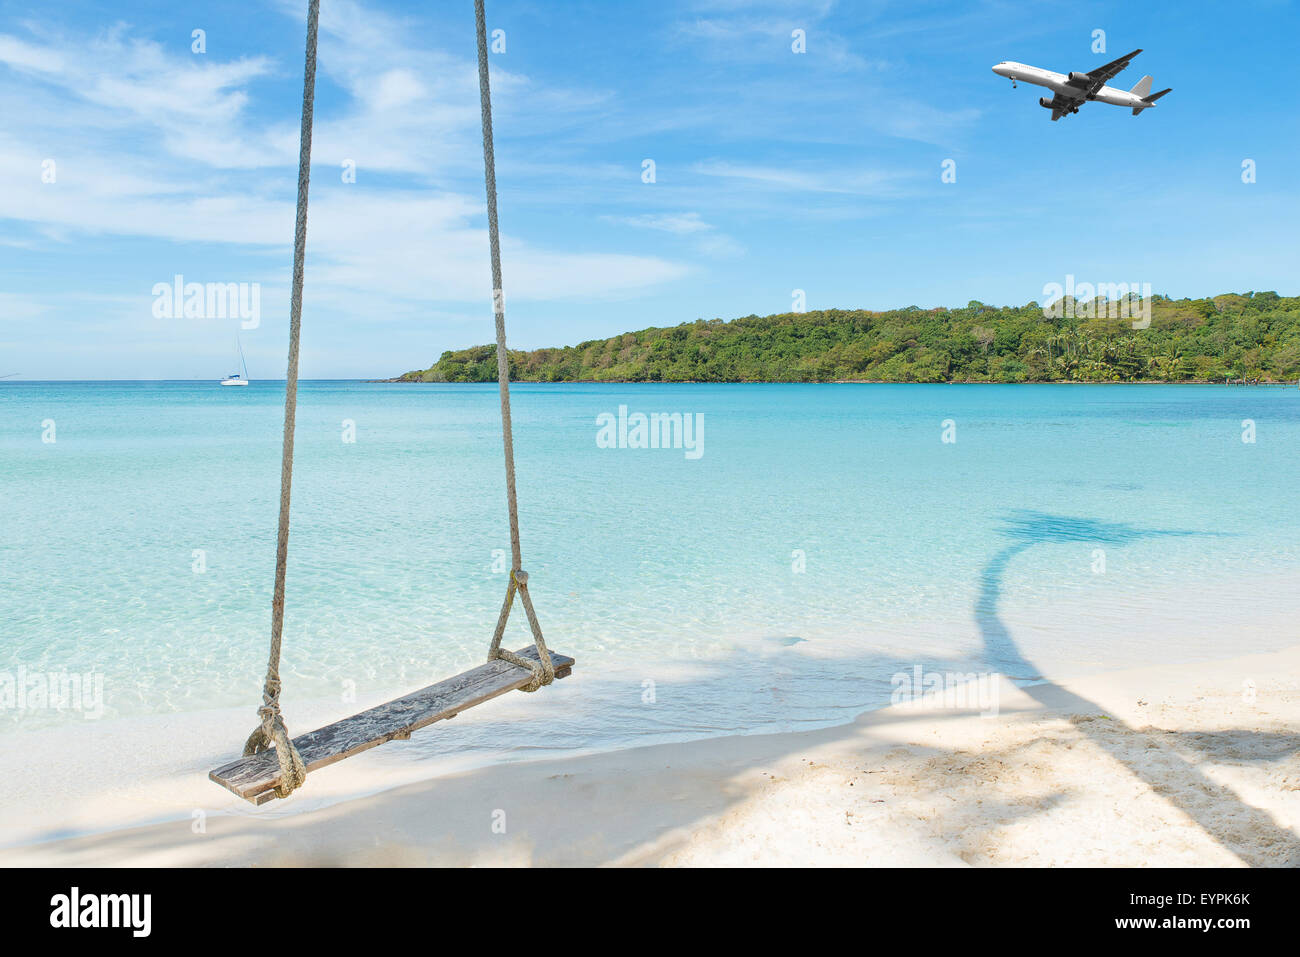 Summer, Travel, Vacation and Holiday concept - Airplane arriving tropical beach sea in Phuket ,Thailand. Stock Photo